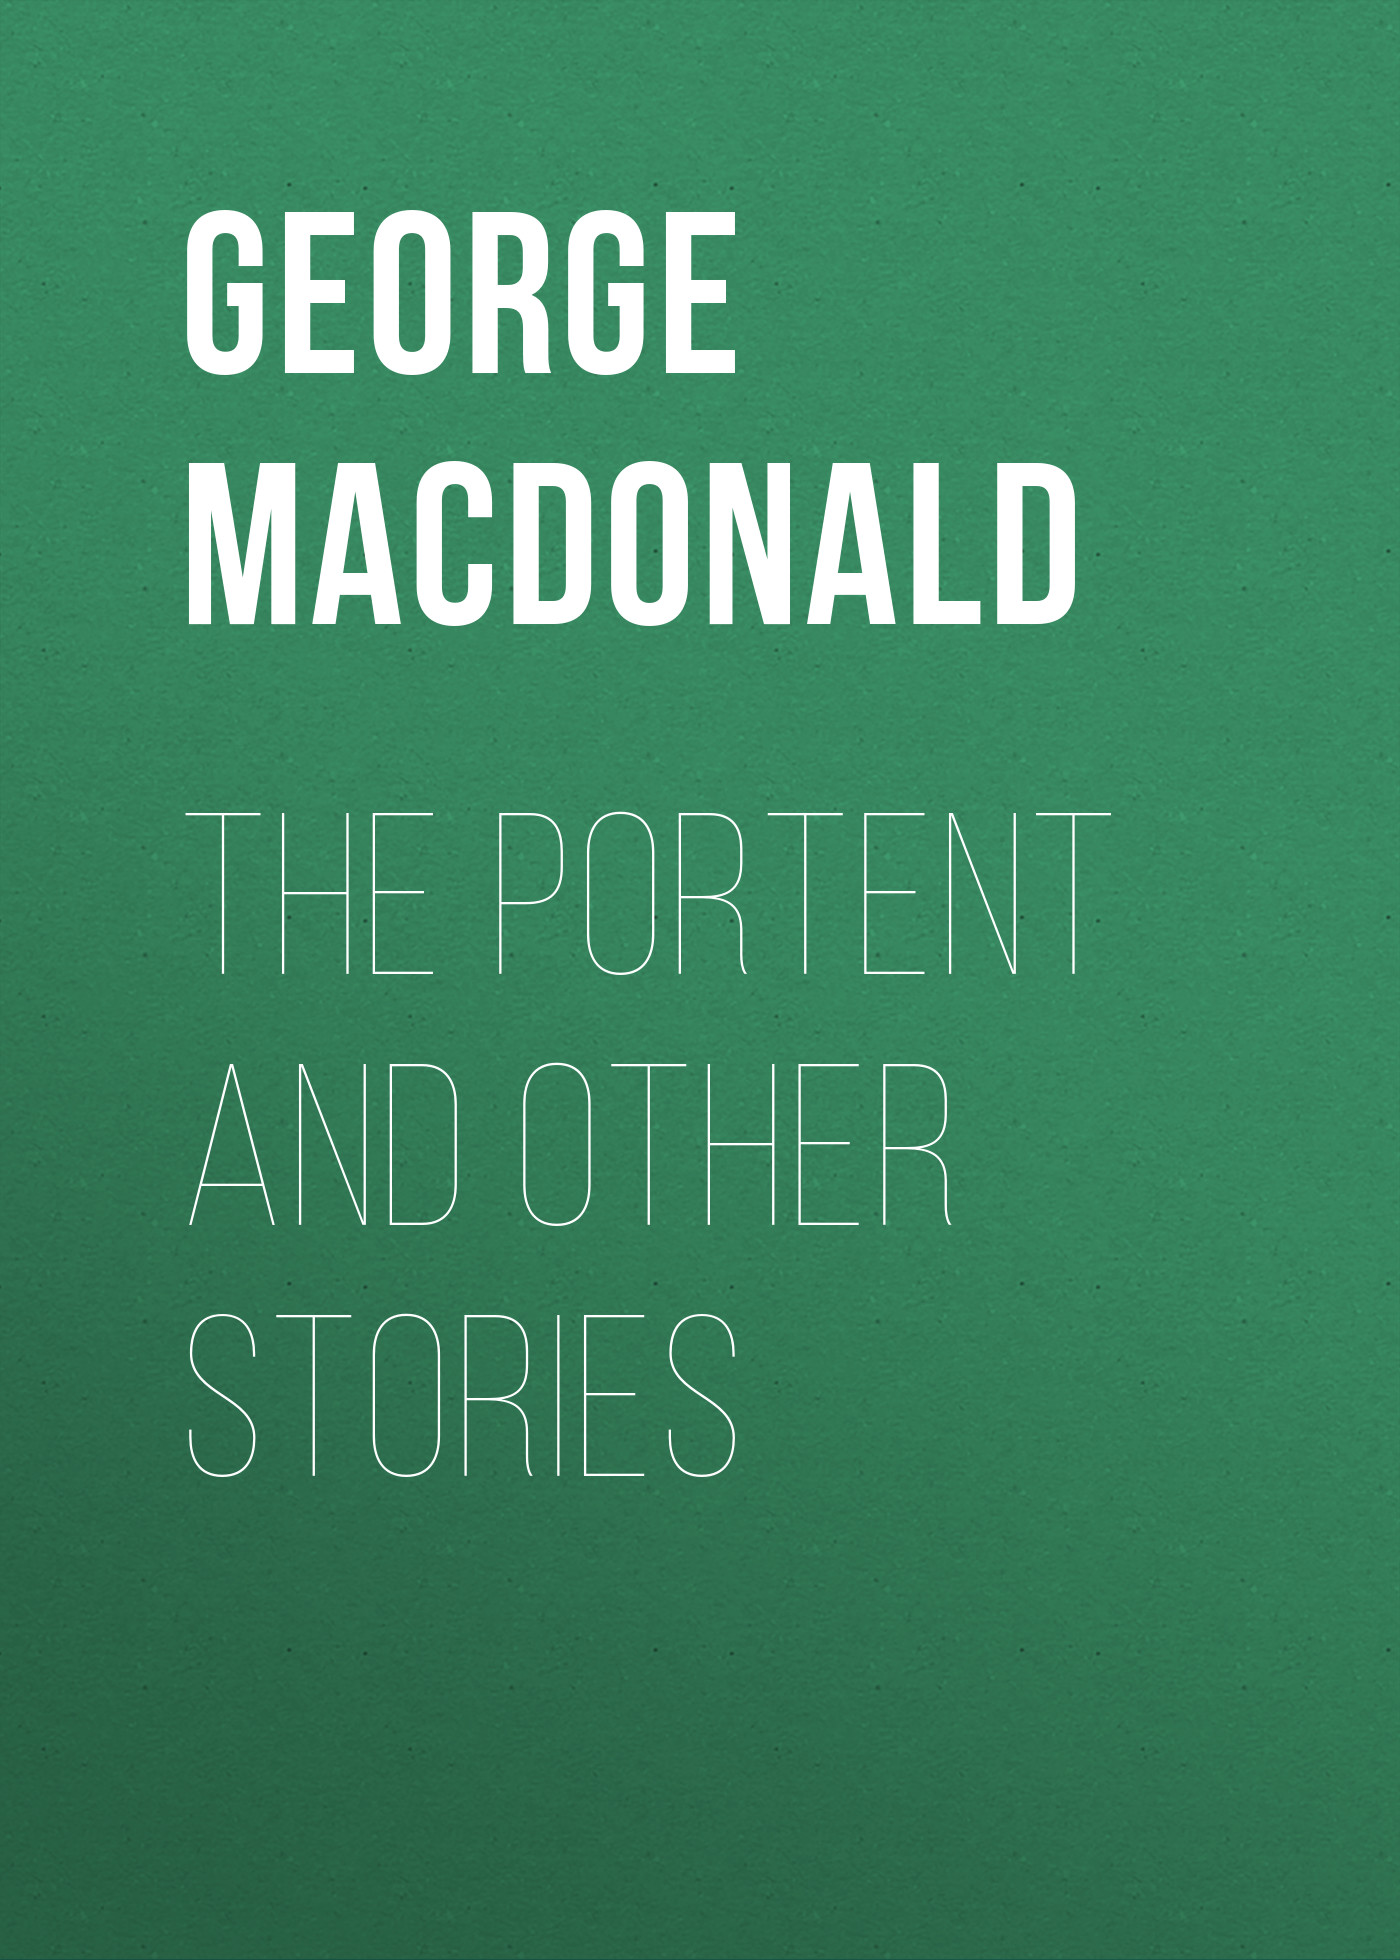 George MacDonald The Portent and Other Stories george macdonald weighed and wanting